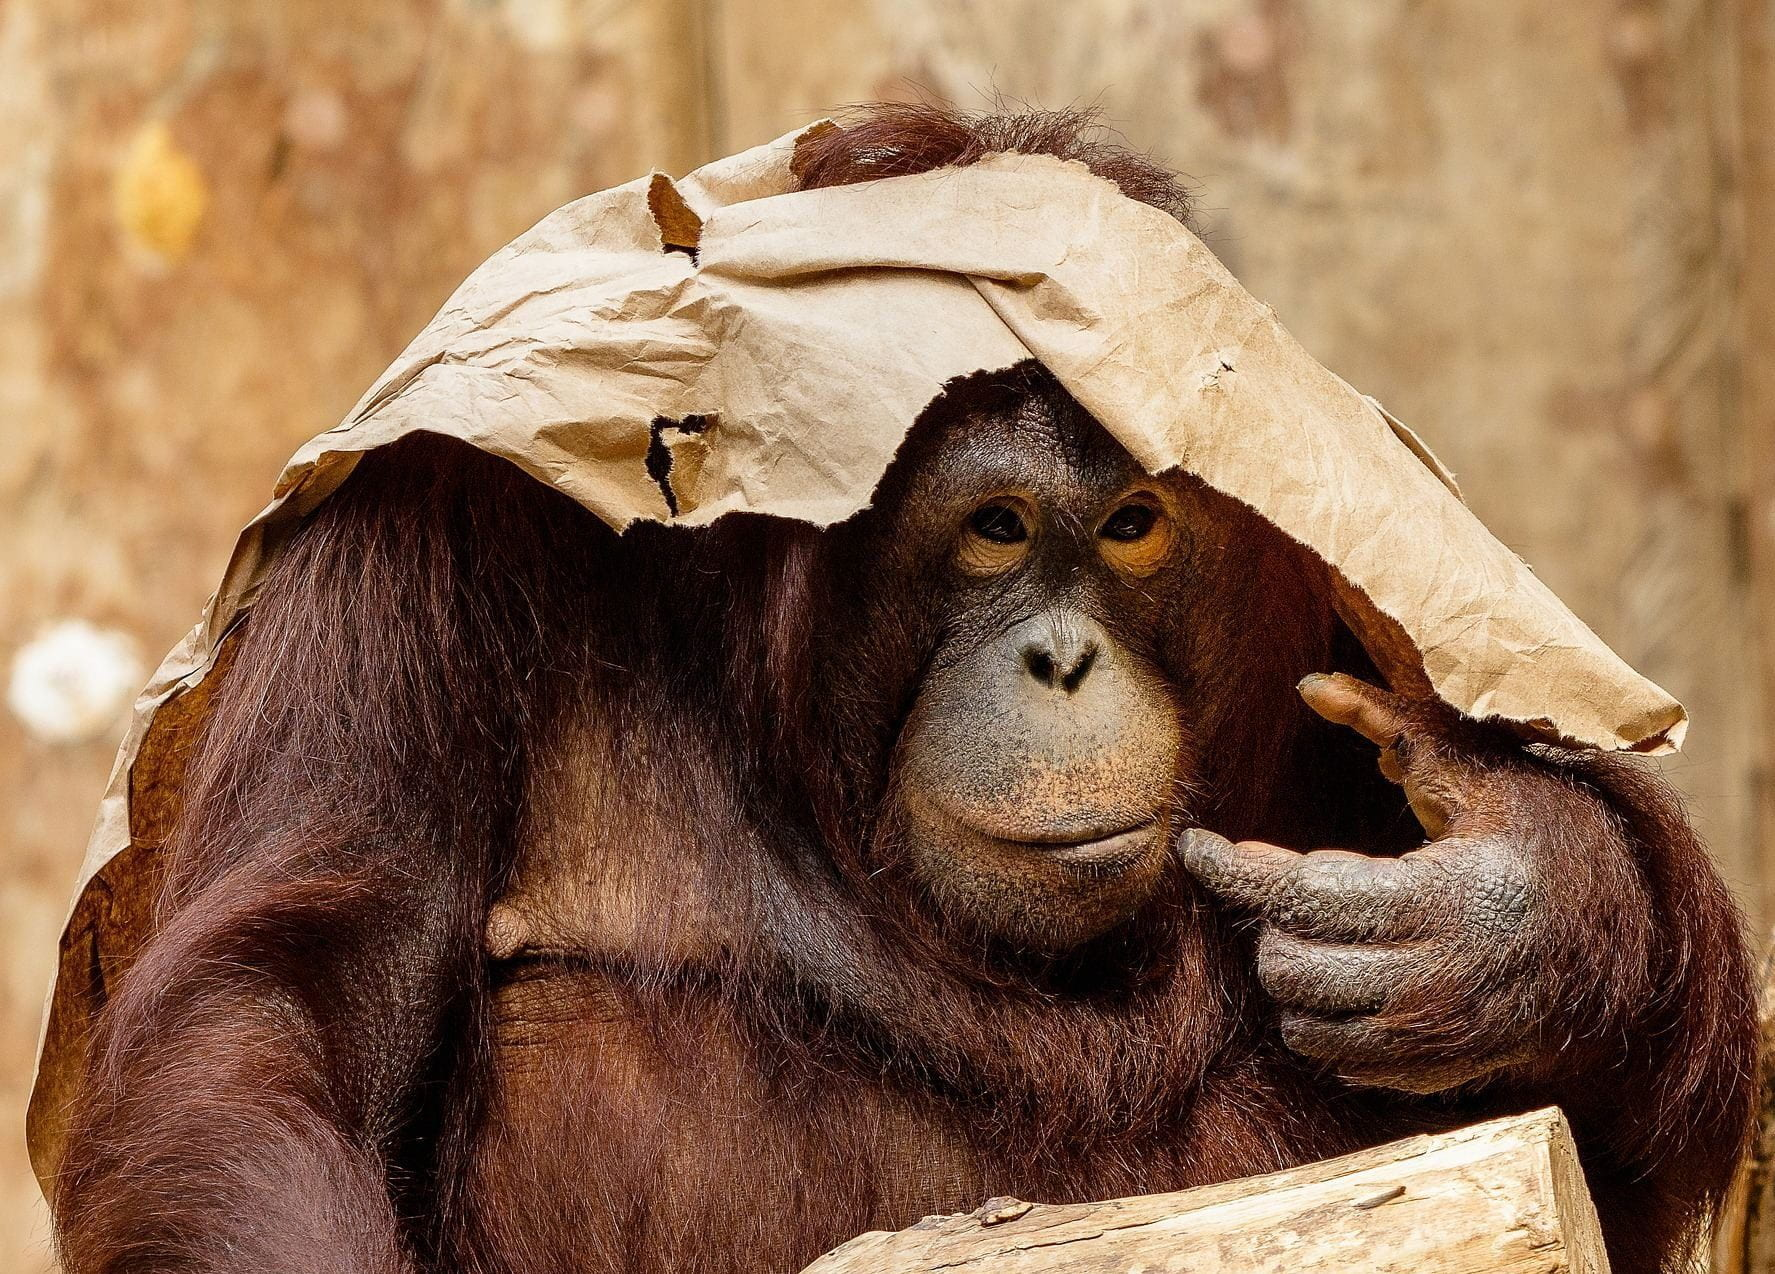 An orangutan with a ripped paper bag on her head acting as a hat.